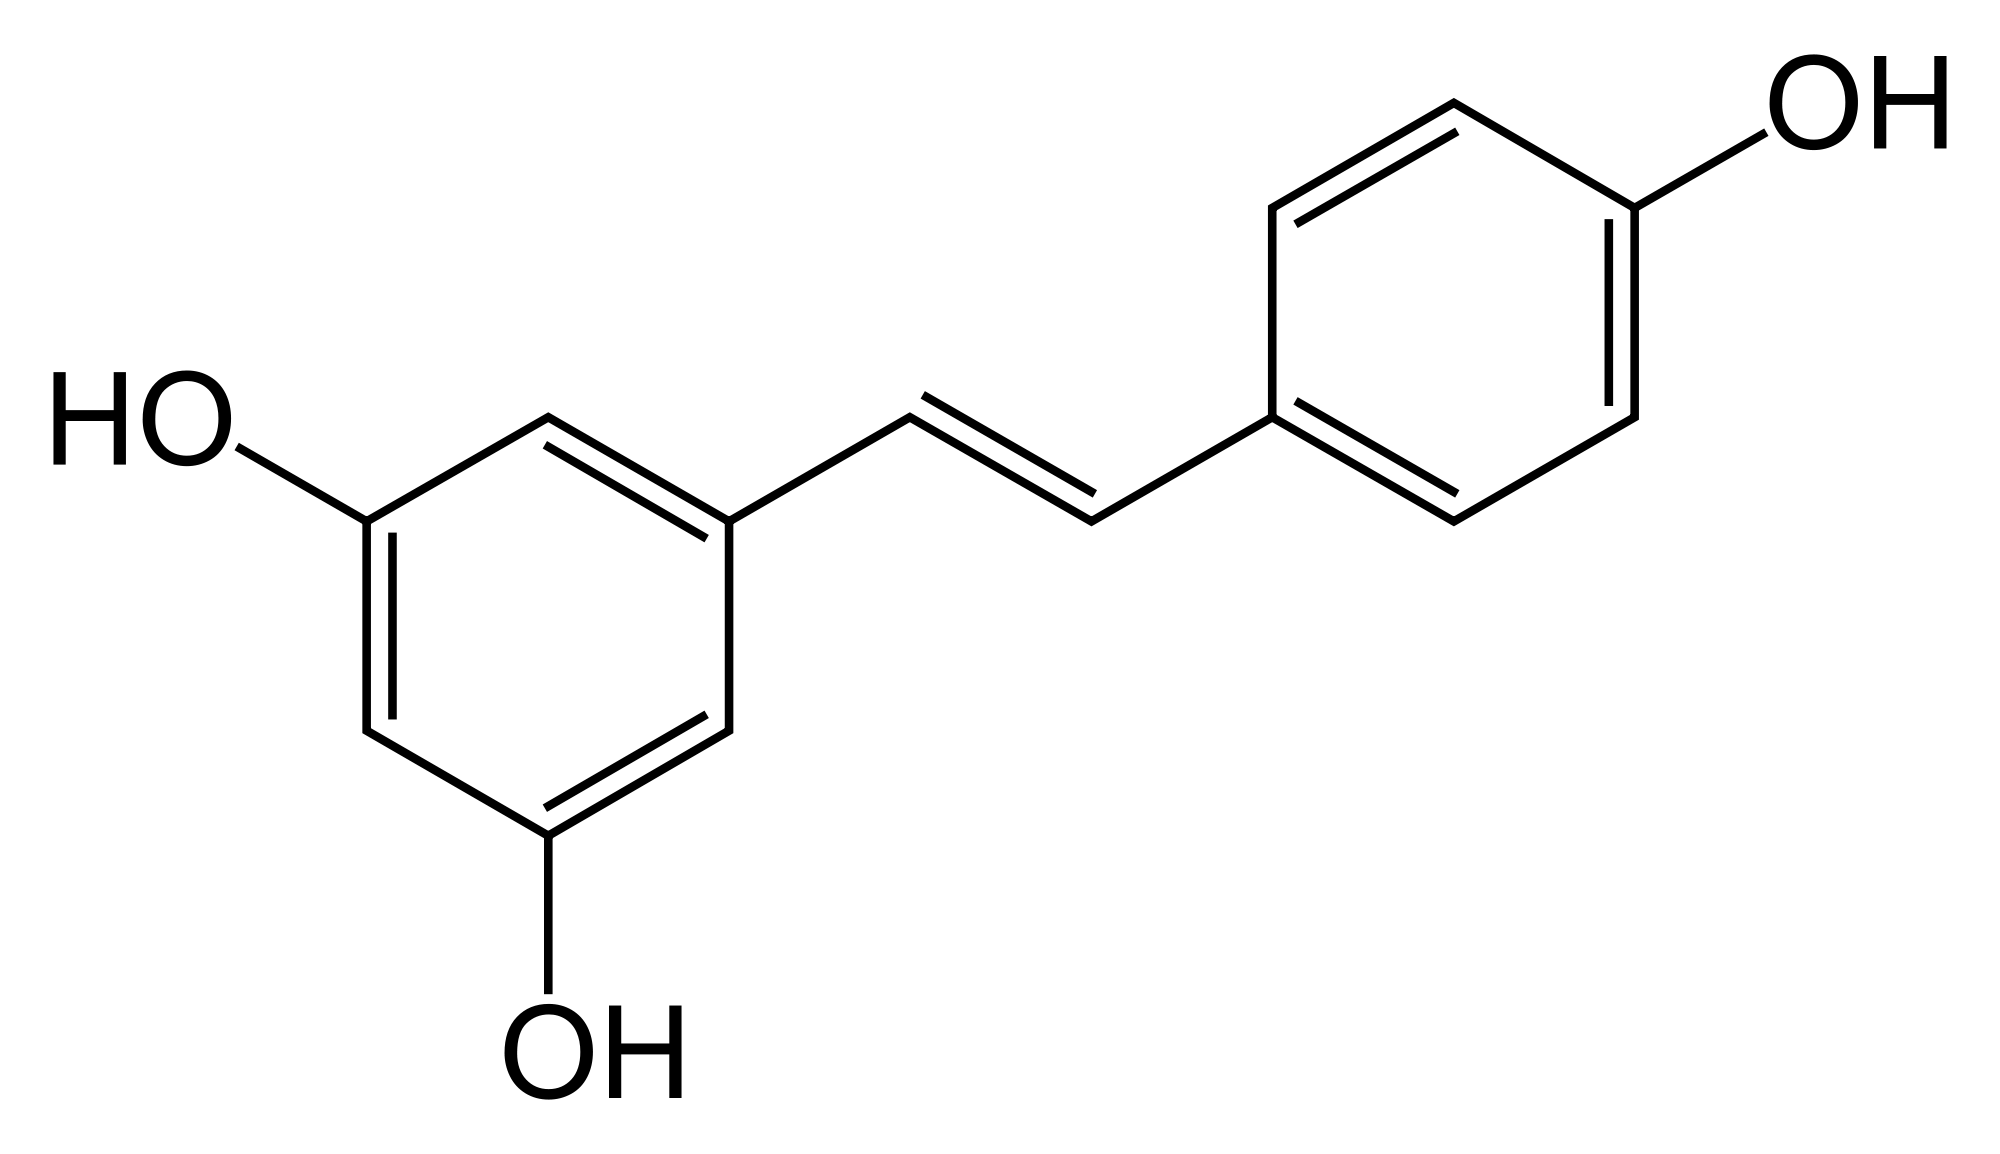 The chemical structure of trans-resveratrol